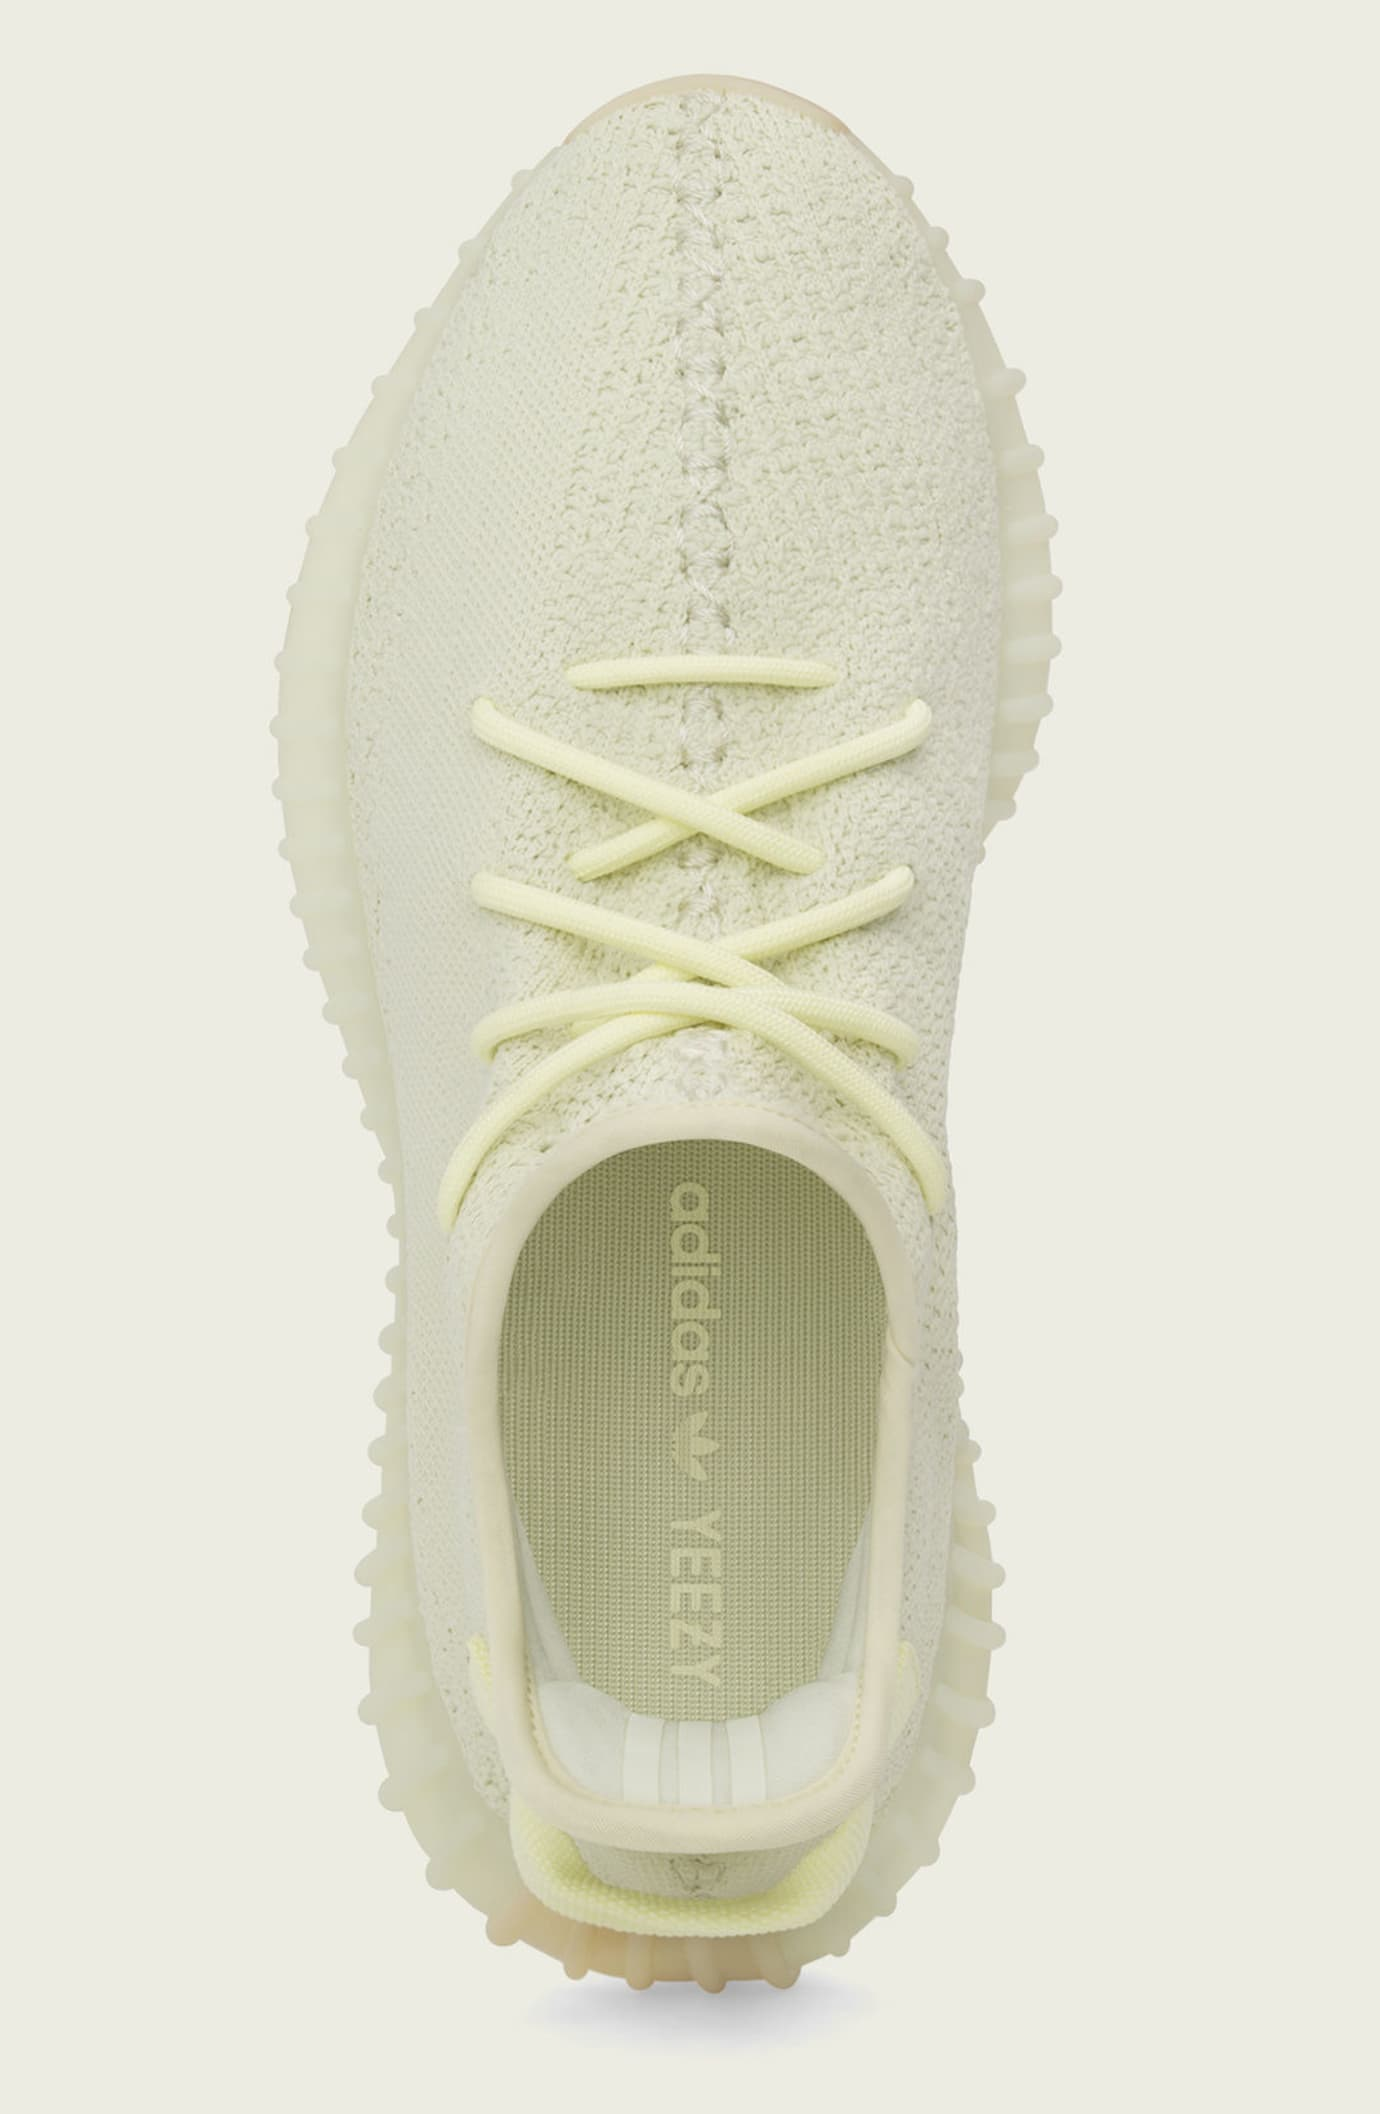 new style ea724 83a09 Adidas Yeezy Boost 350 V2 'Butter' F36980 January 2018 ...